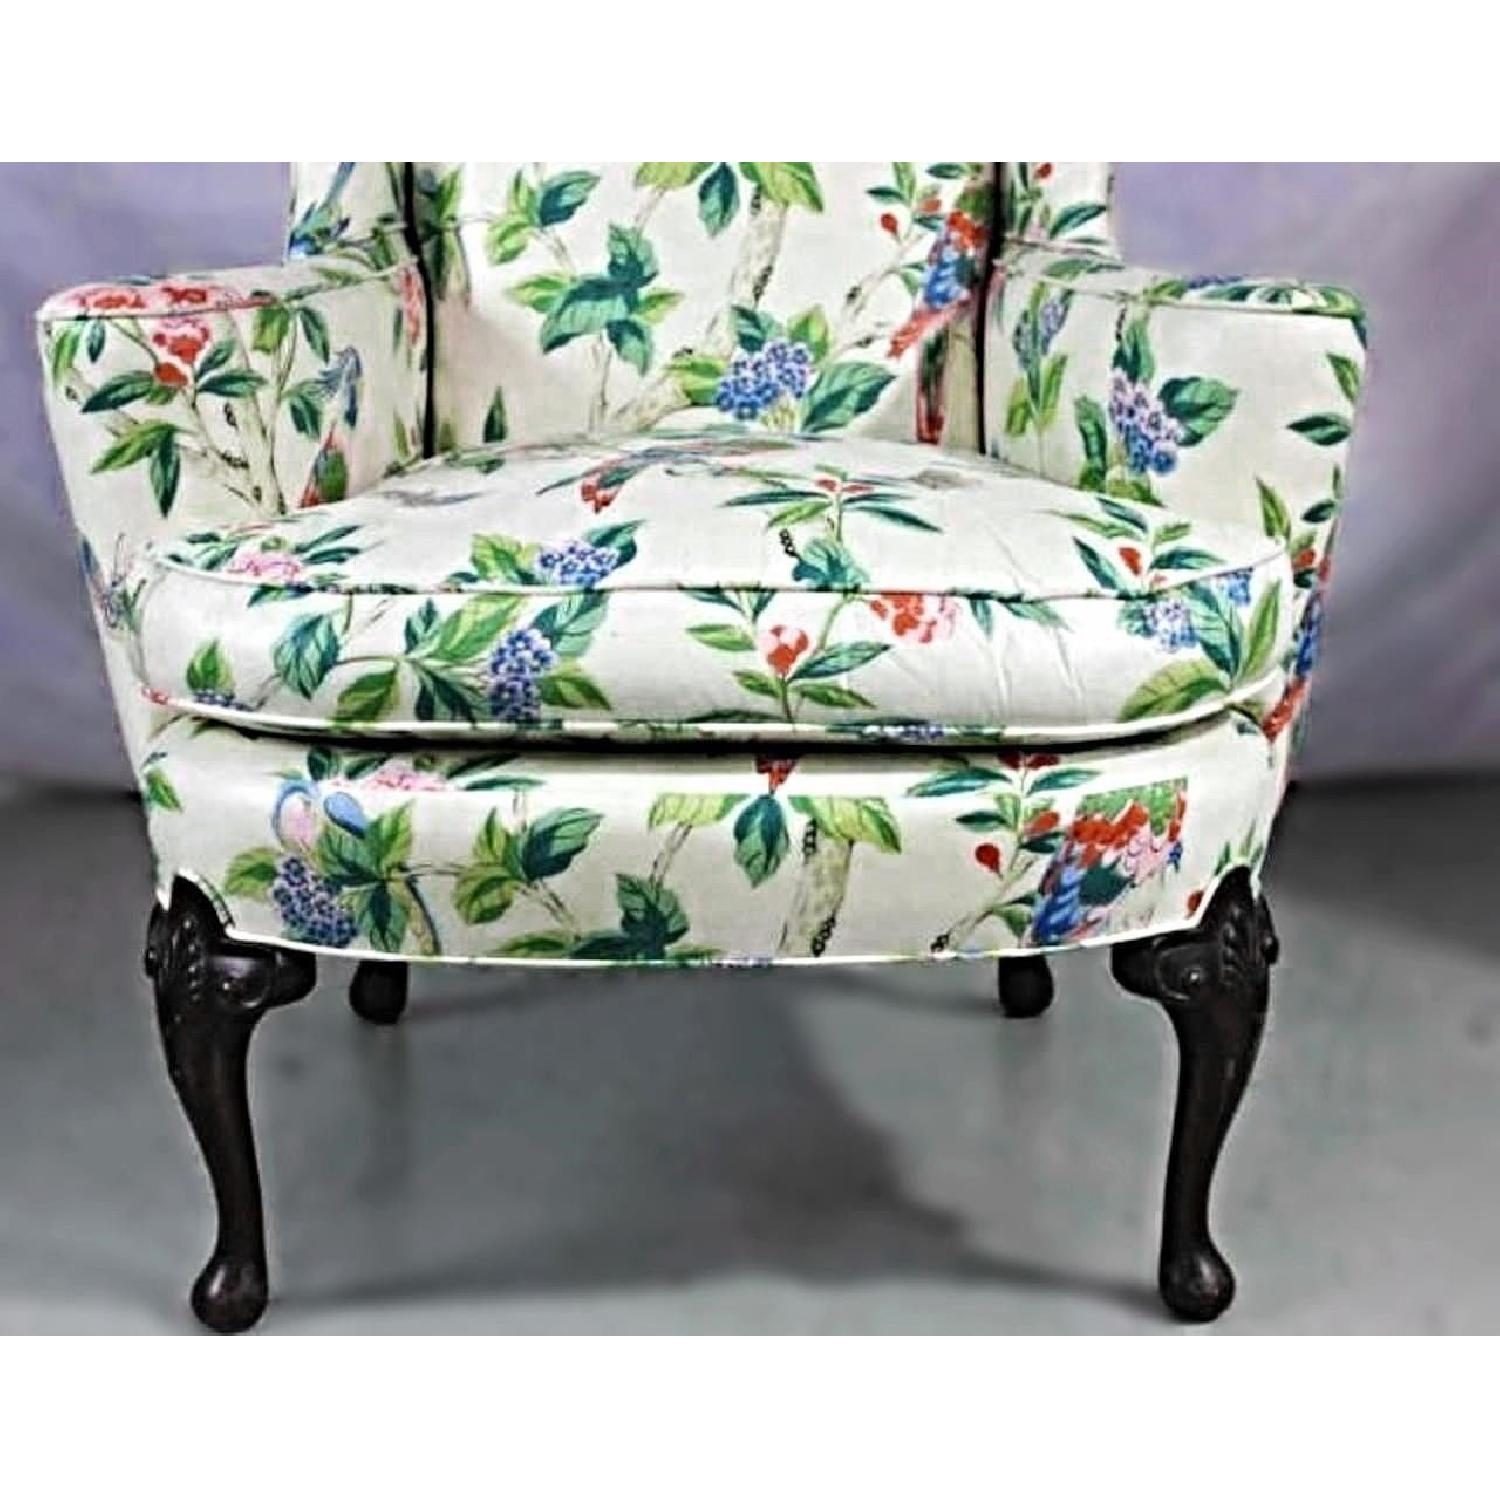 Parrot Exotic Upholstered Wingback Armchair & Ottoman-6